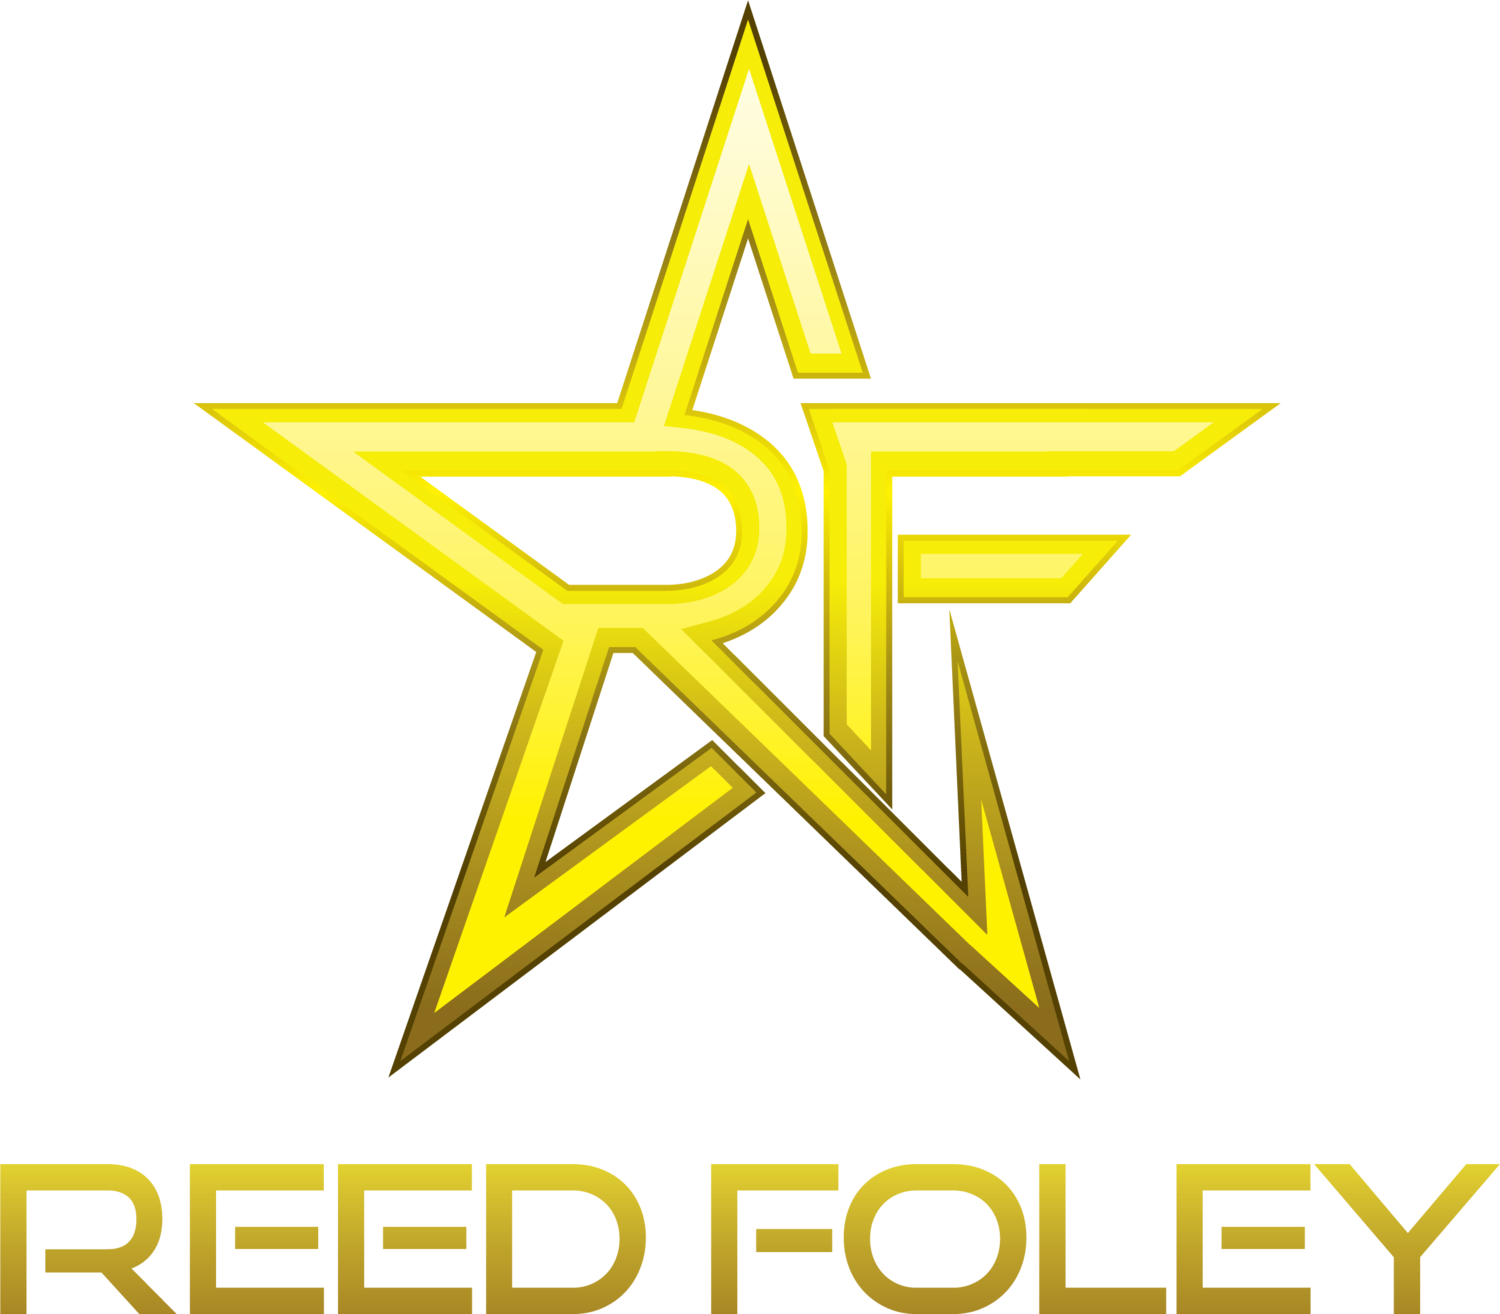 Reed Foley